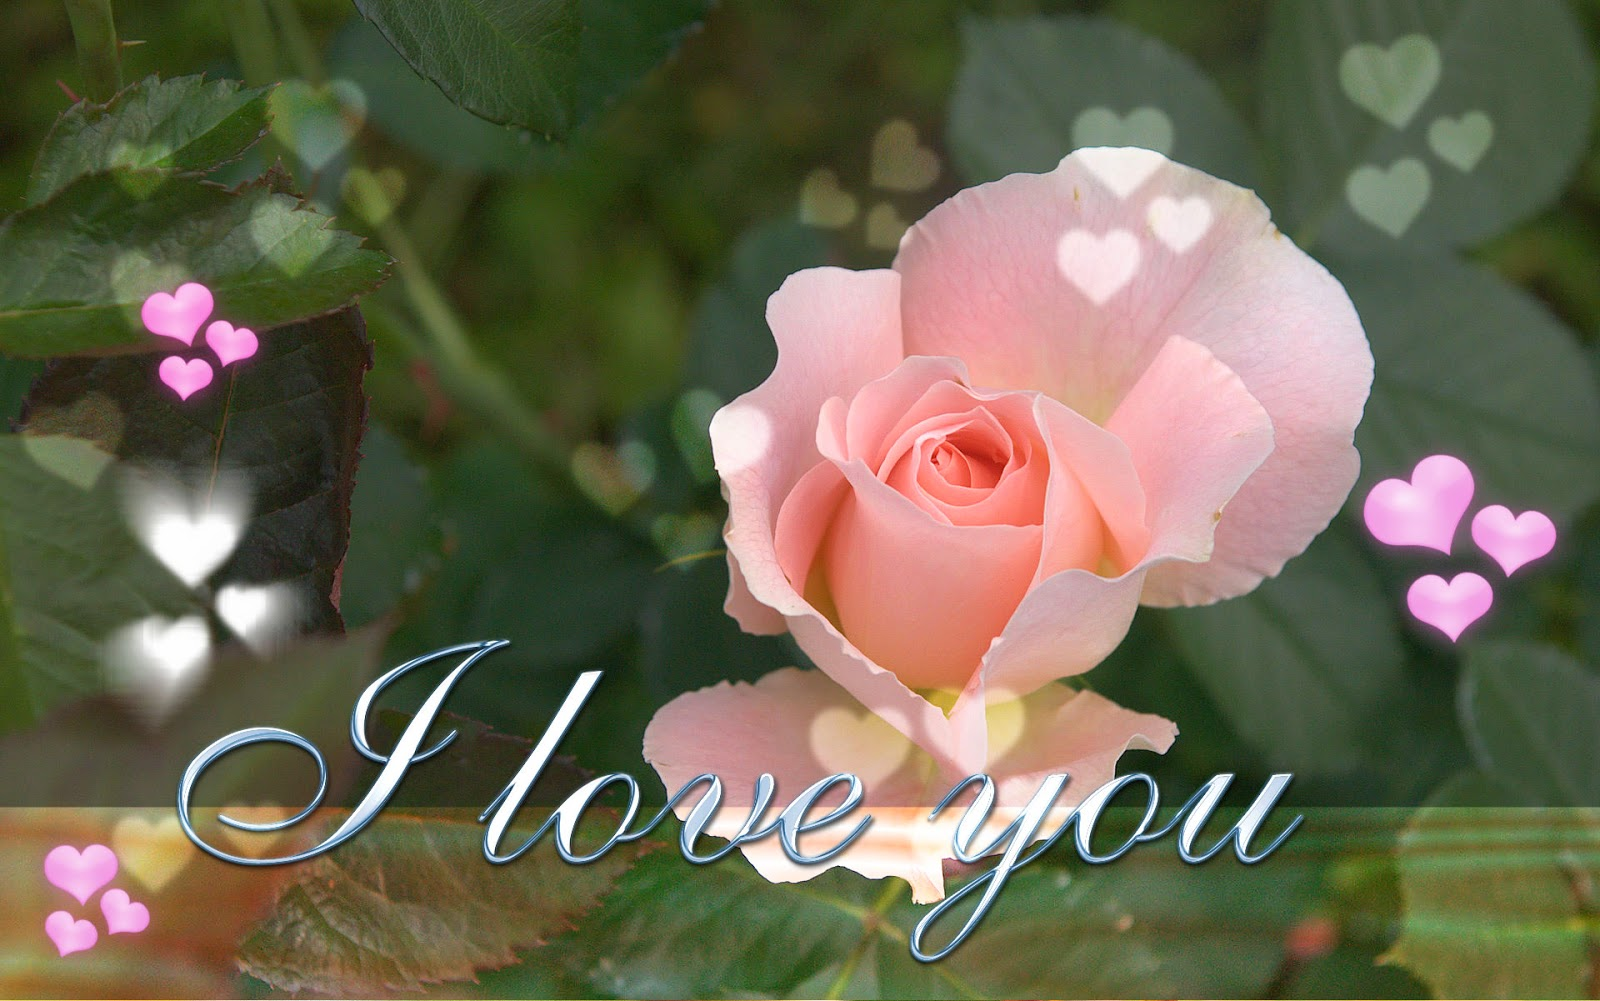 Wallpaper download i love you - I Love You Wishes Flowers Hd Wallpapers Images Pictures Photos Gallery Free Download